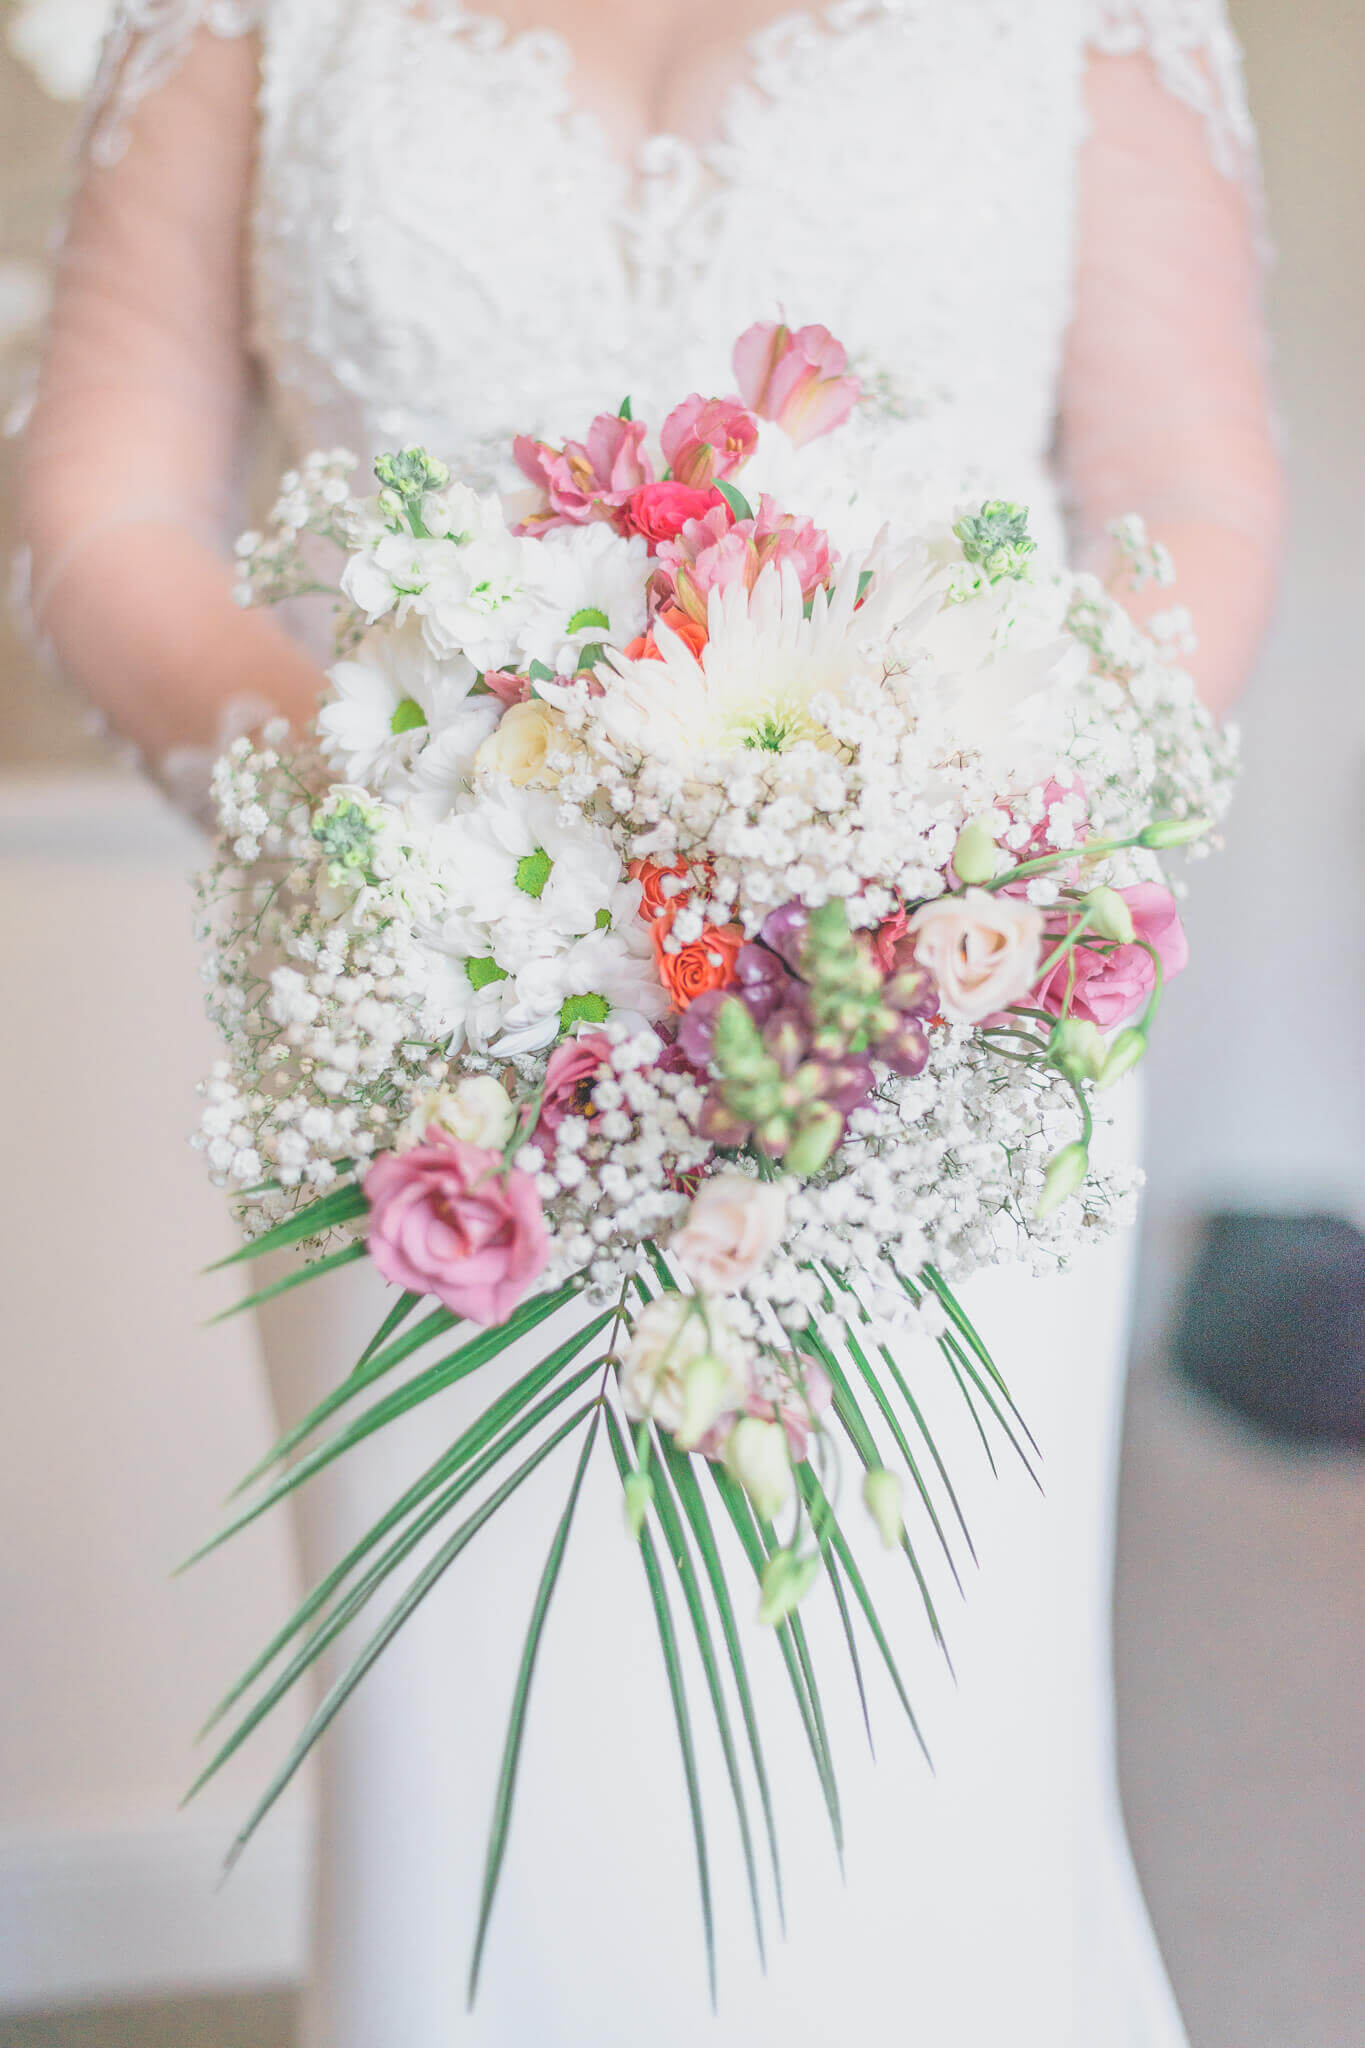 Bride with flowers photo by Ryan Hewett Photography